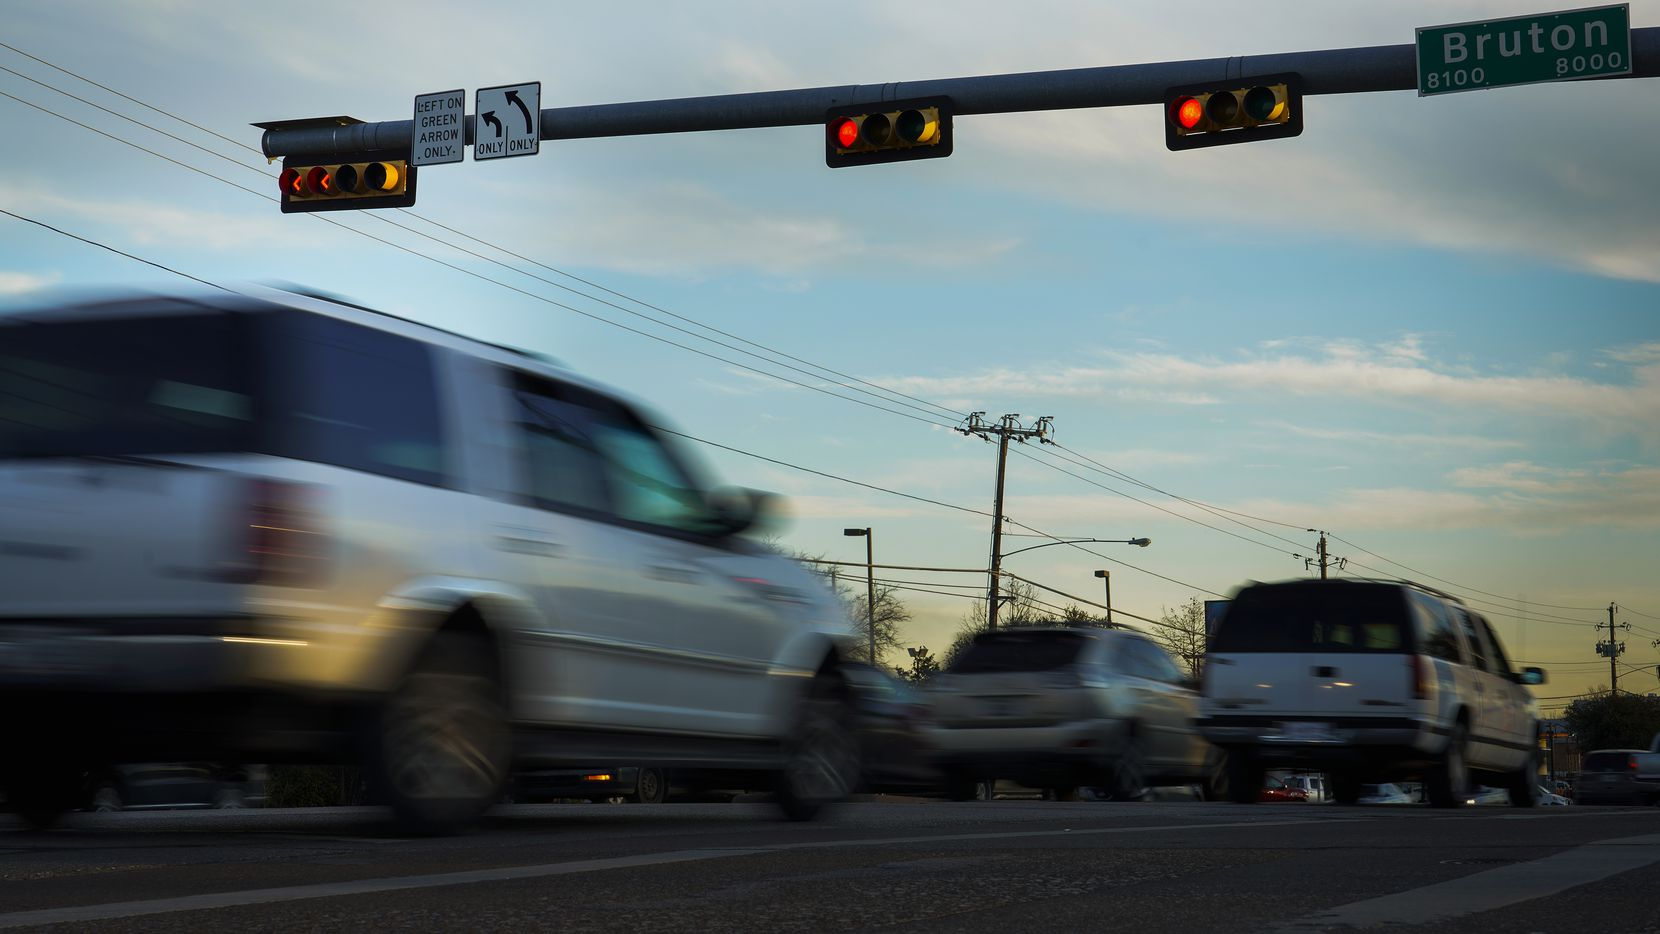 Cars run a red light at  South Buckner Boulevard and Bruton Road on Friday, Feb. 7, 2020, in Dallas. Traffic accidents quadrupled at the intersection after Texas banned red light cameras.